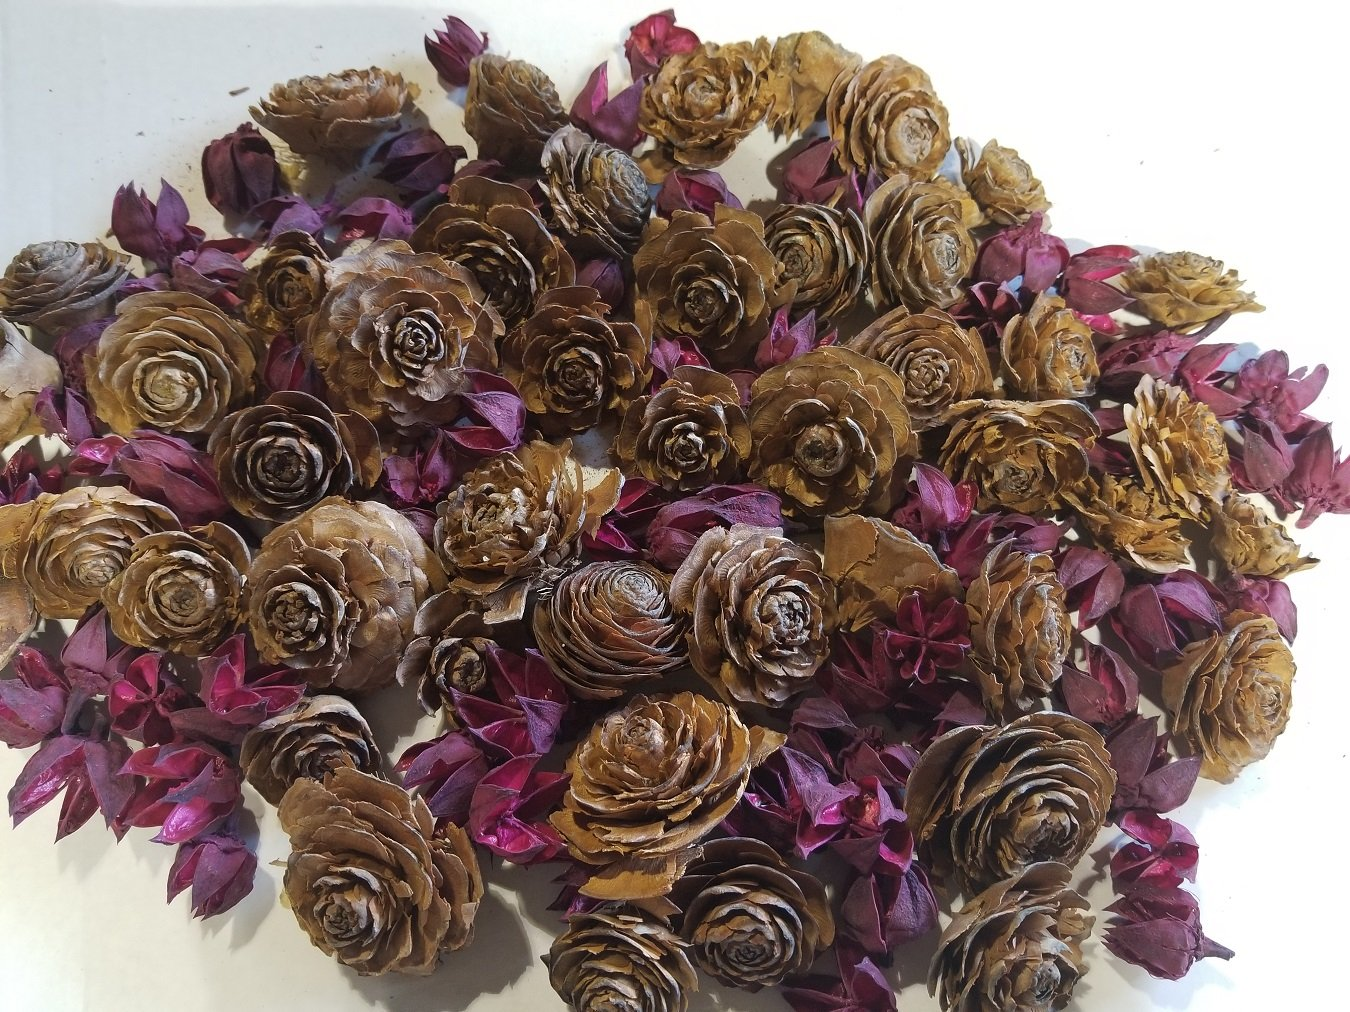 Cedar Rose Pine Cones with Dried Flowers - Perfect for Potpourri, Bowl Fillers, Home Decor, Crafting - Can be used in all Seasons, Best for Fall and Winter